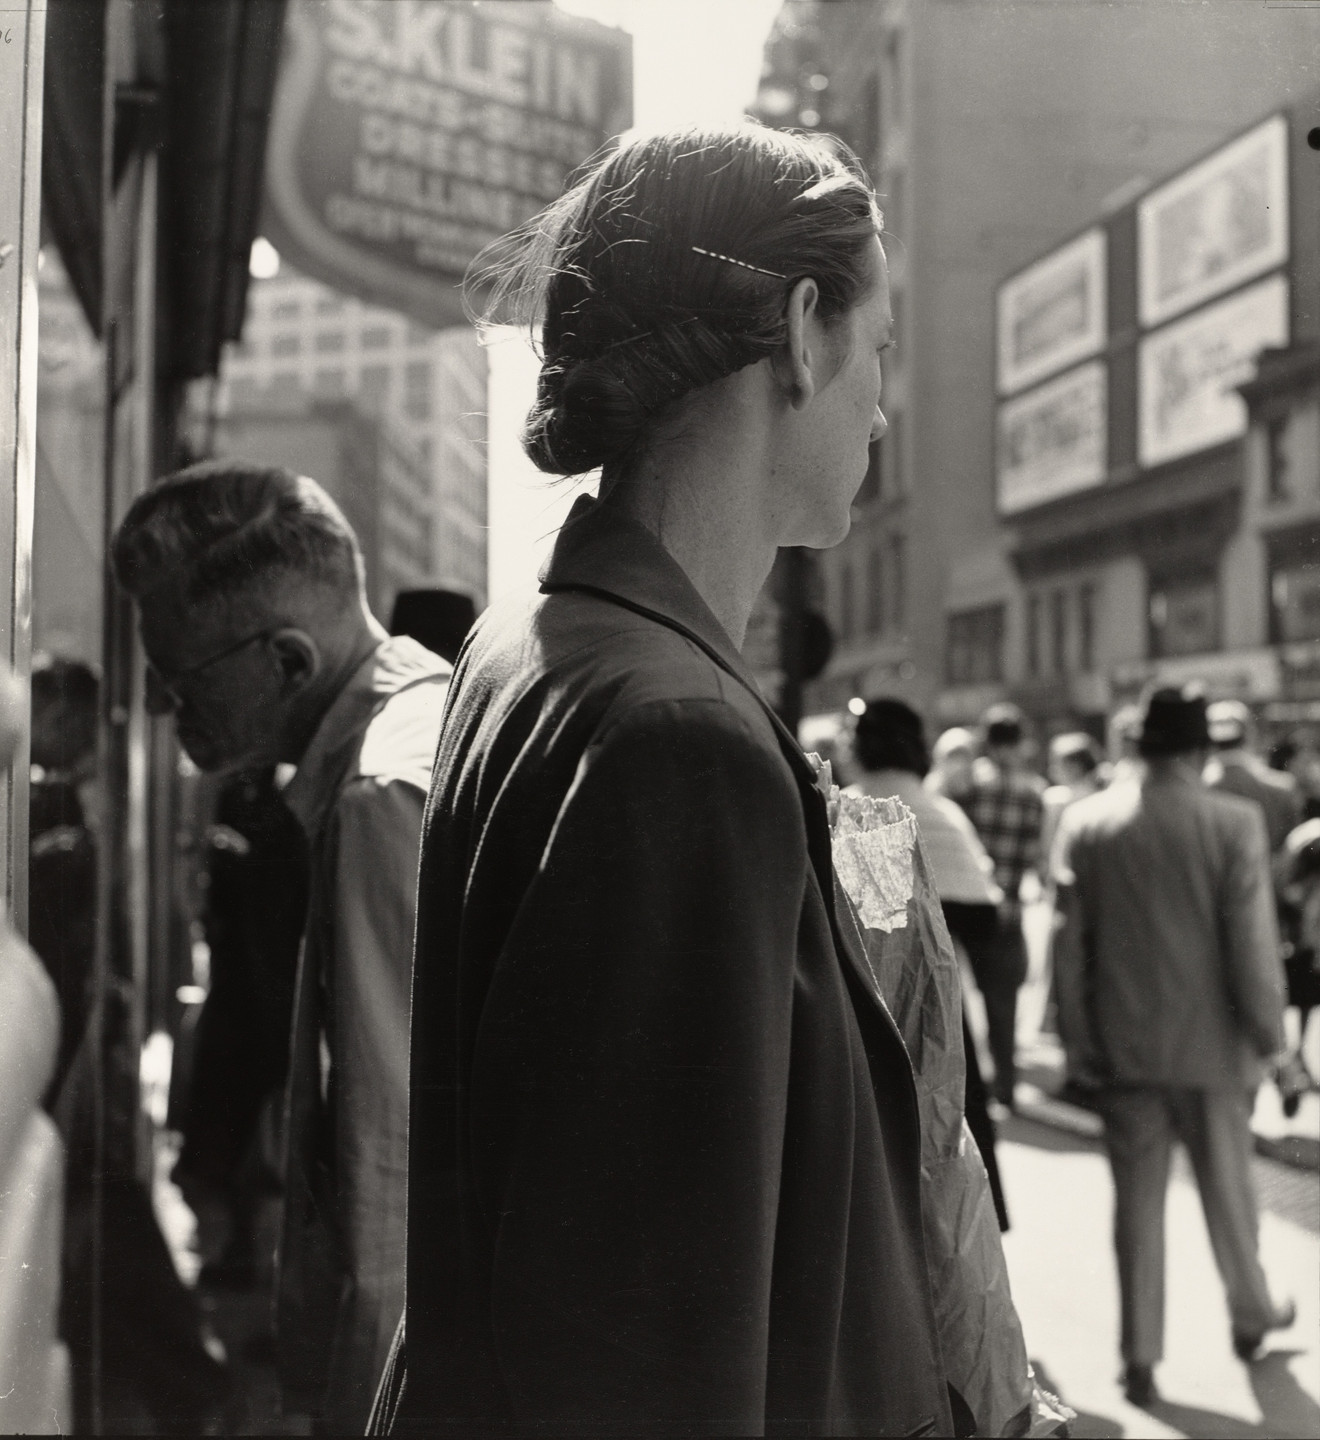 Dorothea Lange. Union Square, New York. 1952